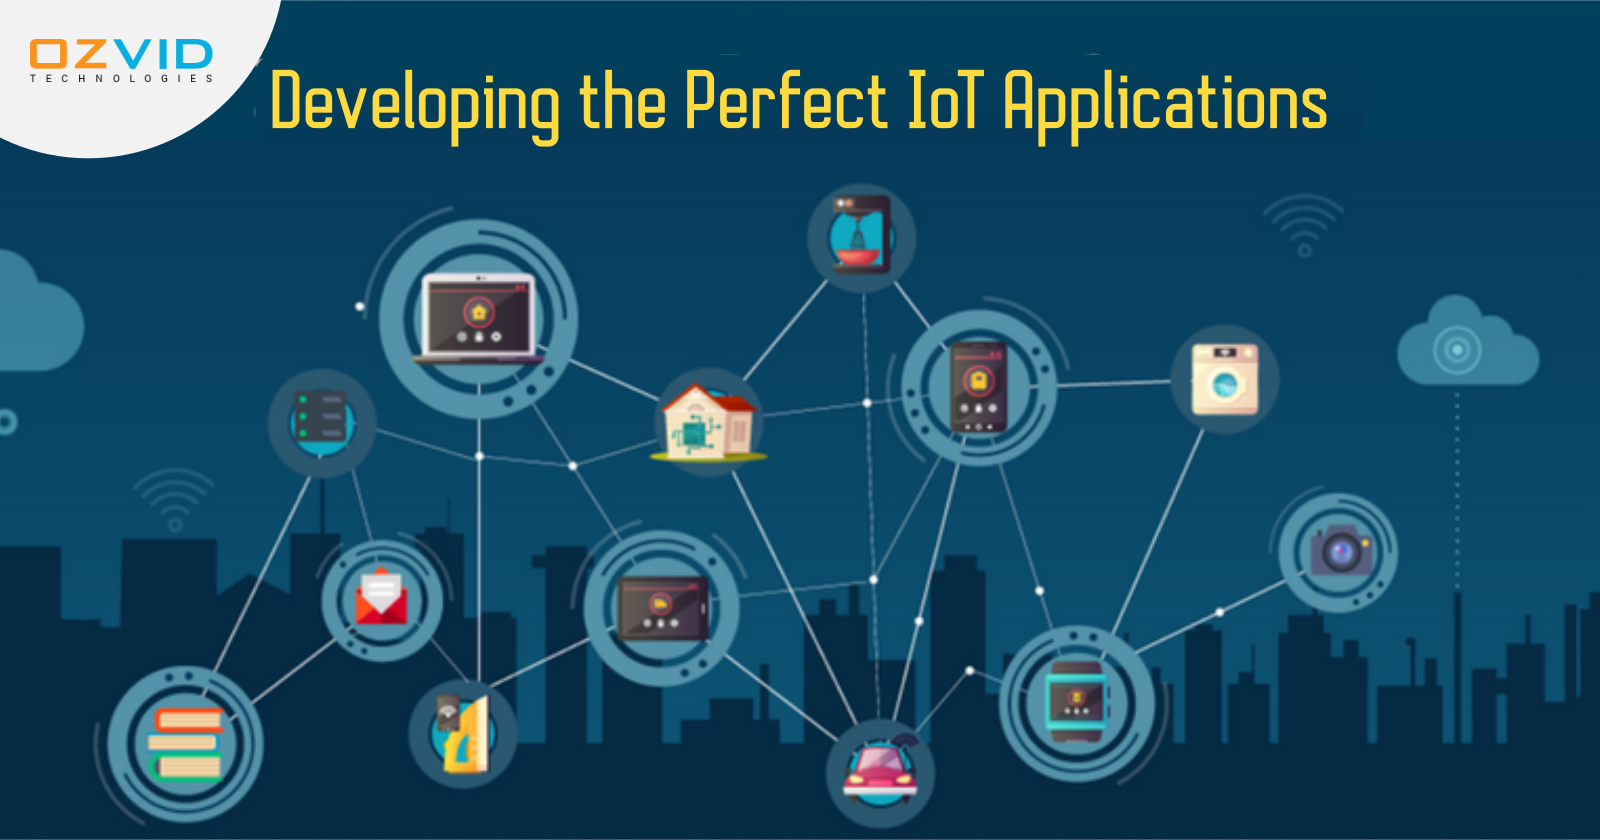 Planning to Develop an IoT Application? Go Through These Questions First!